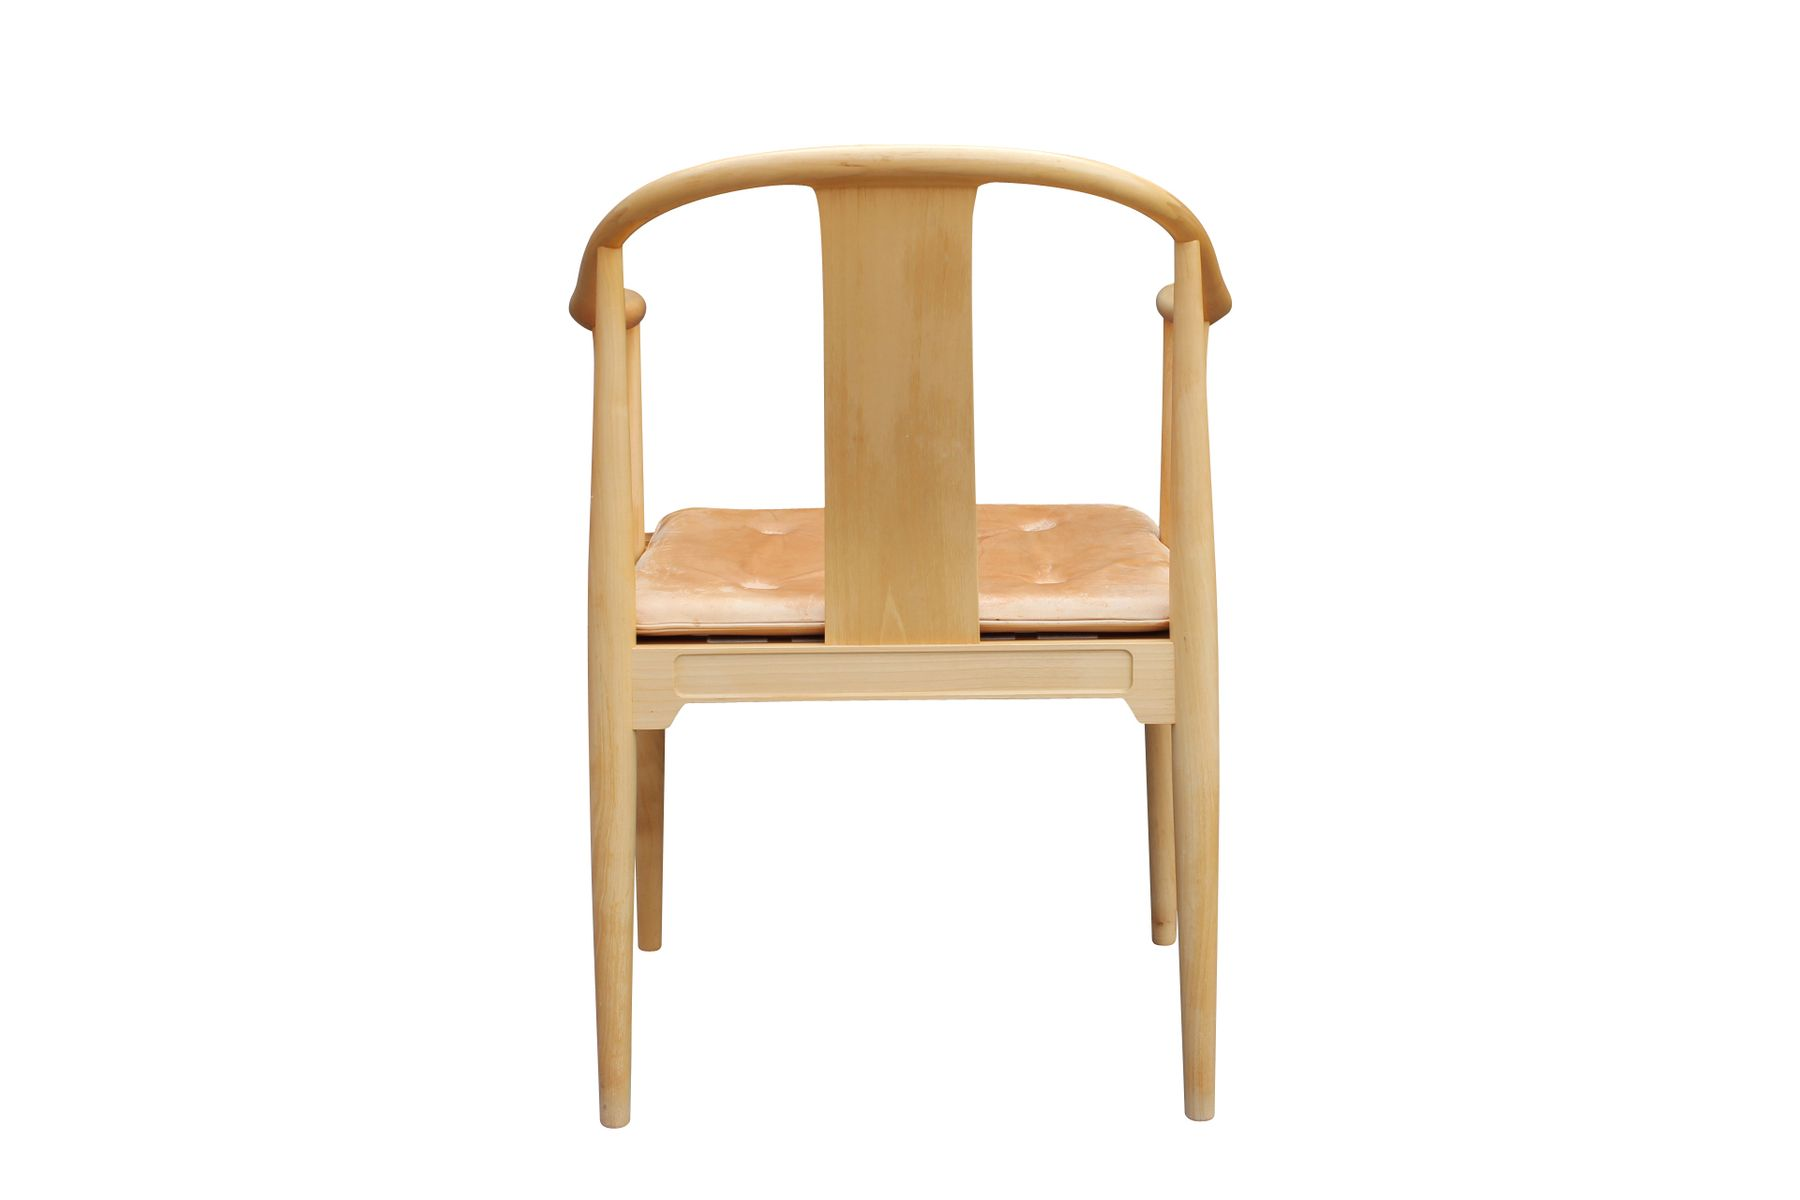 Chinese Chair Model 4283 Chinese Chair By Hans J Wegner For Fritz